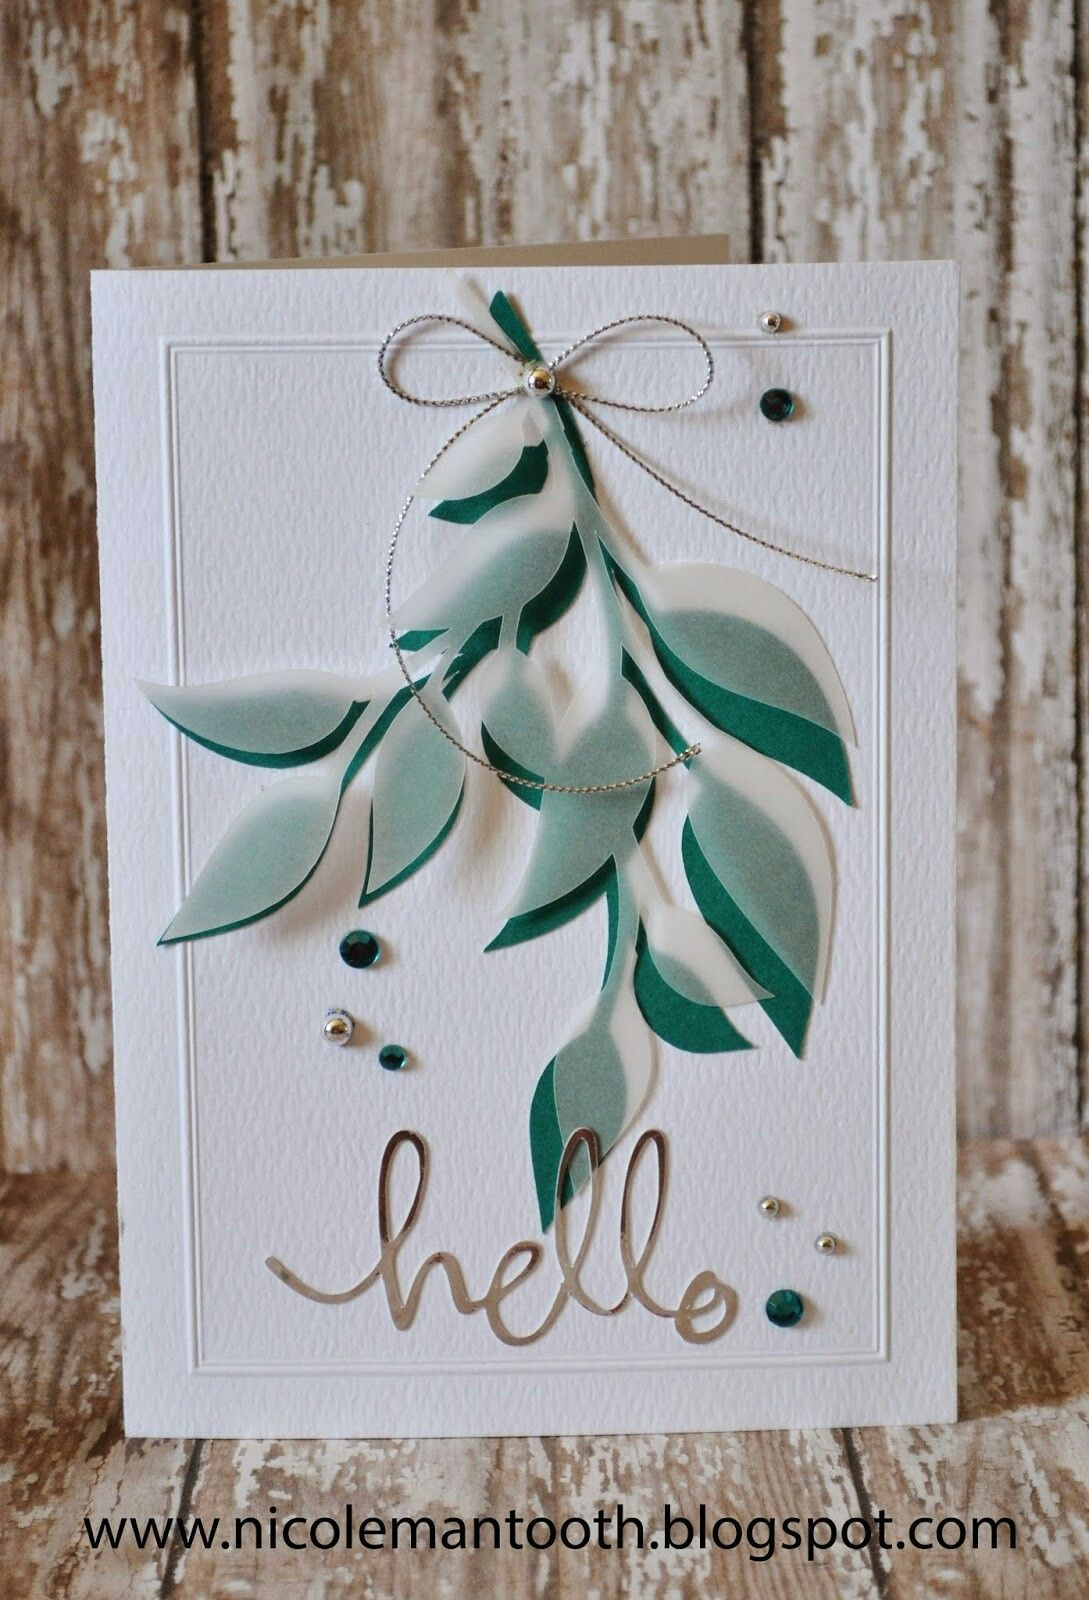 Pin by sol on 카드 pinterest cards card ideas and feel better cards